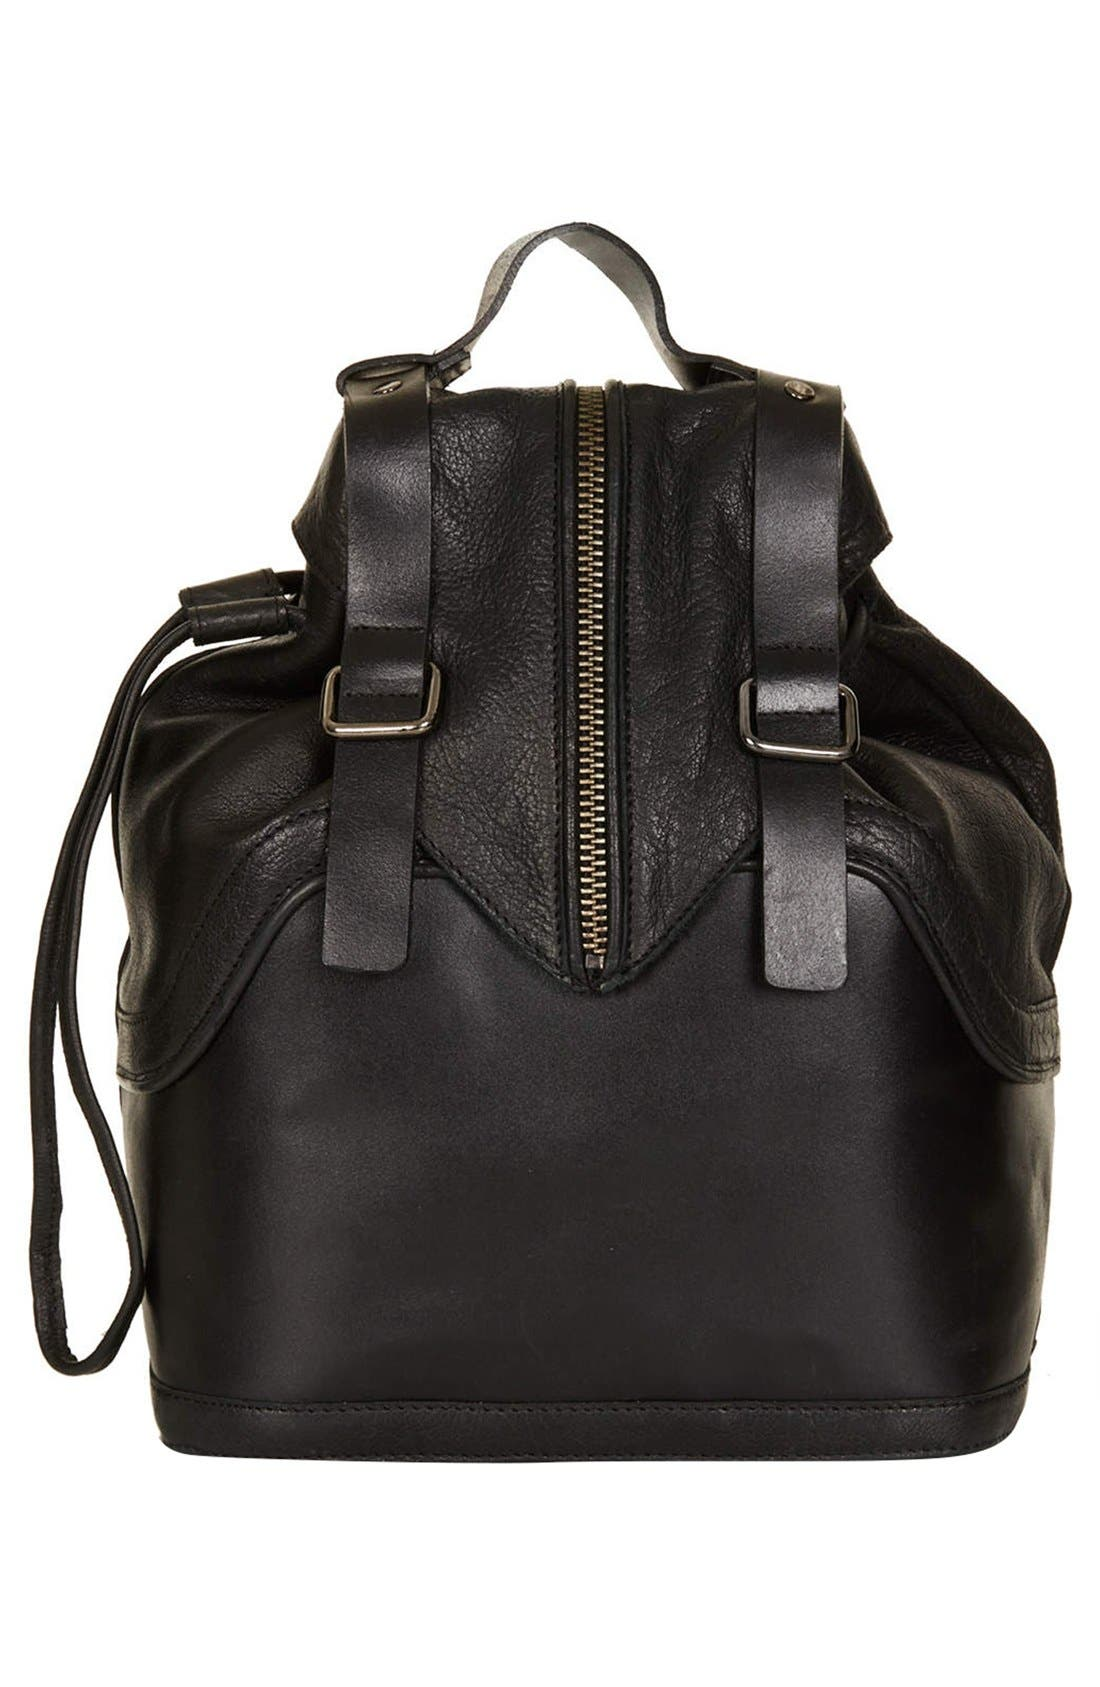 Main Image - Topshop Buckled Leather Backpack